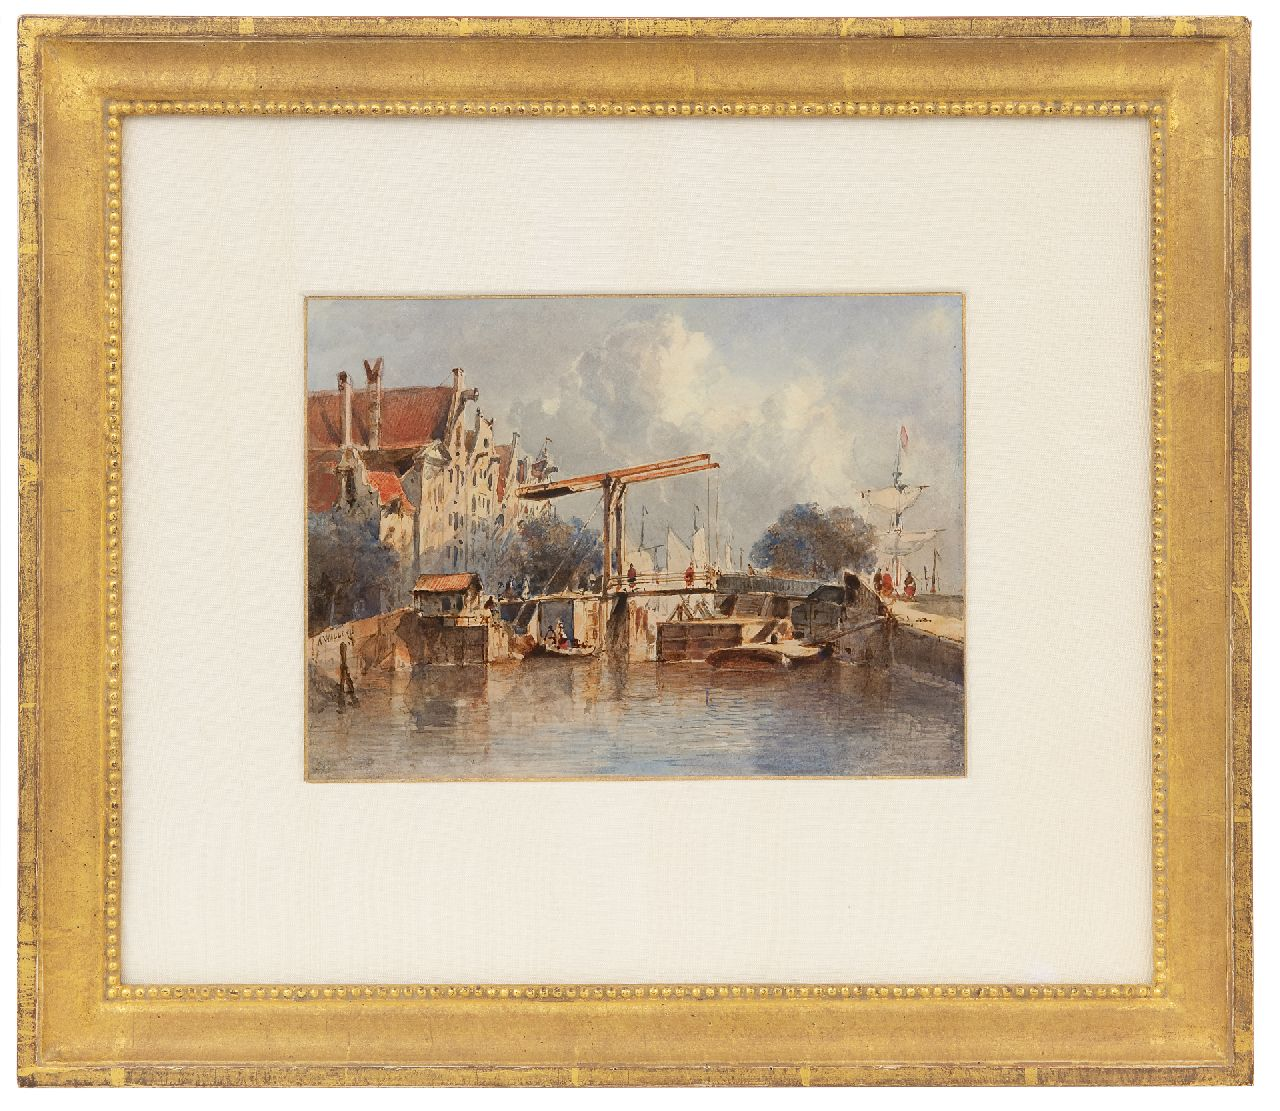 Waldorp A.  | Antonie Waldorp | Watercolours and drawings offered for sale | A view of a Dutch town with a lock, watercolour on paper 16.9 x 23.0 cm, signed c.l.